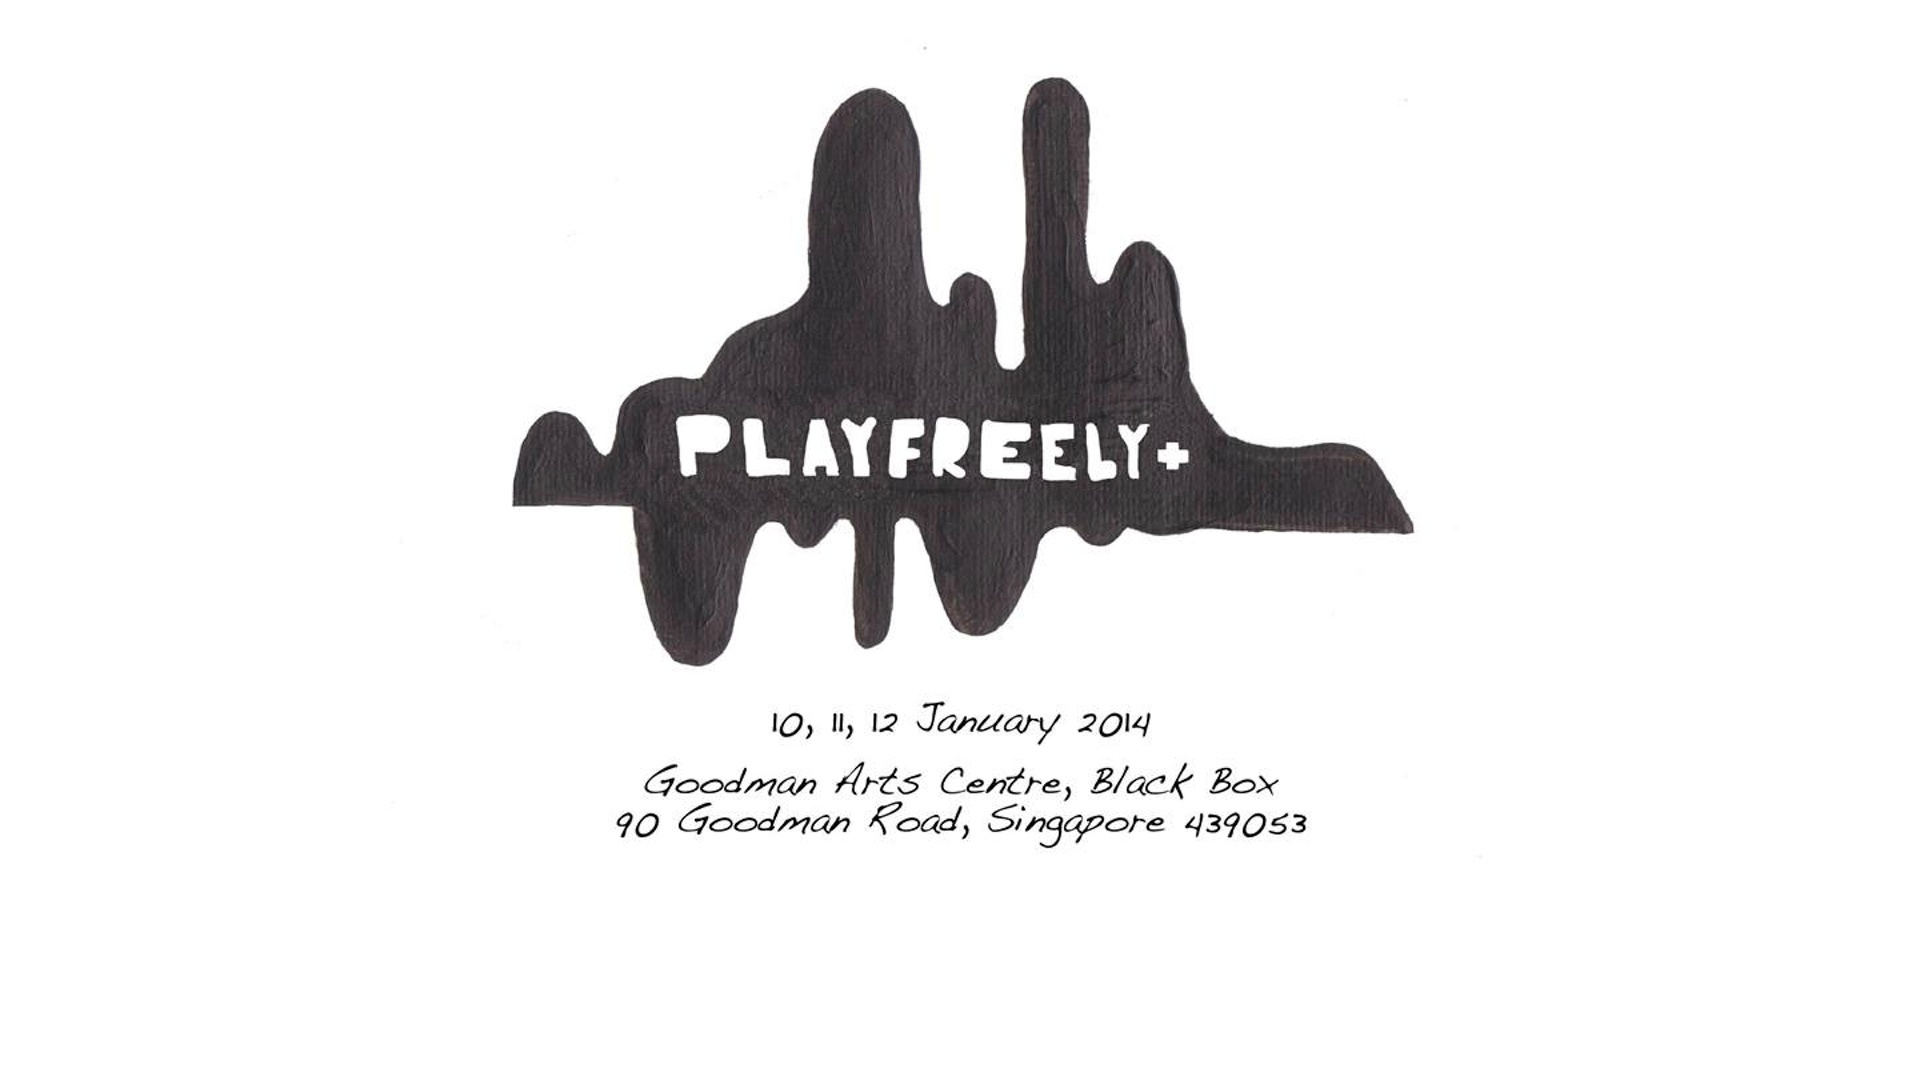 Playfreely+ 2014 (Day 3)